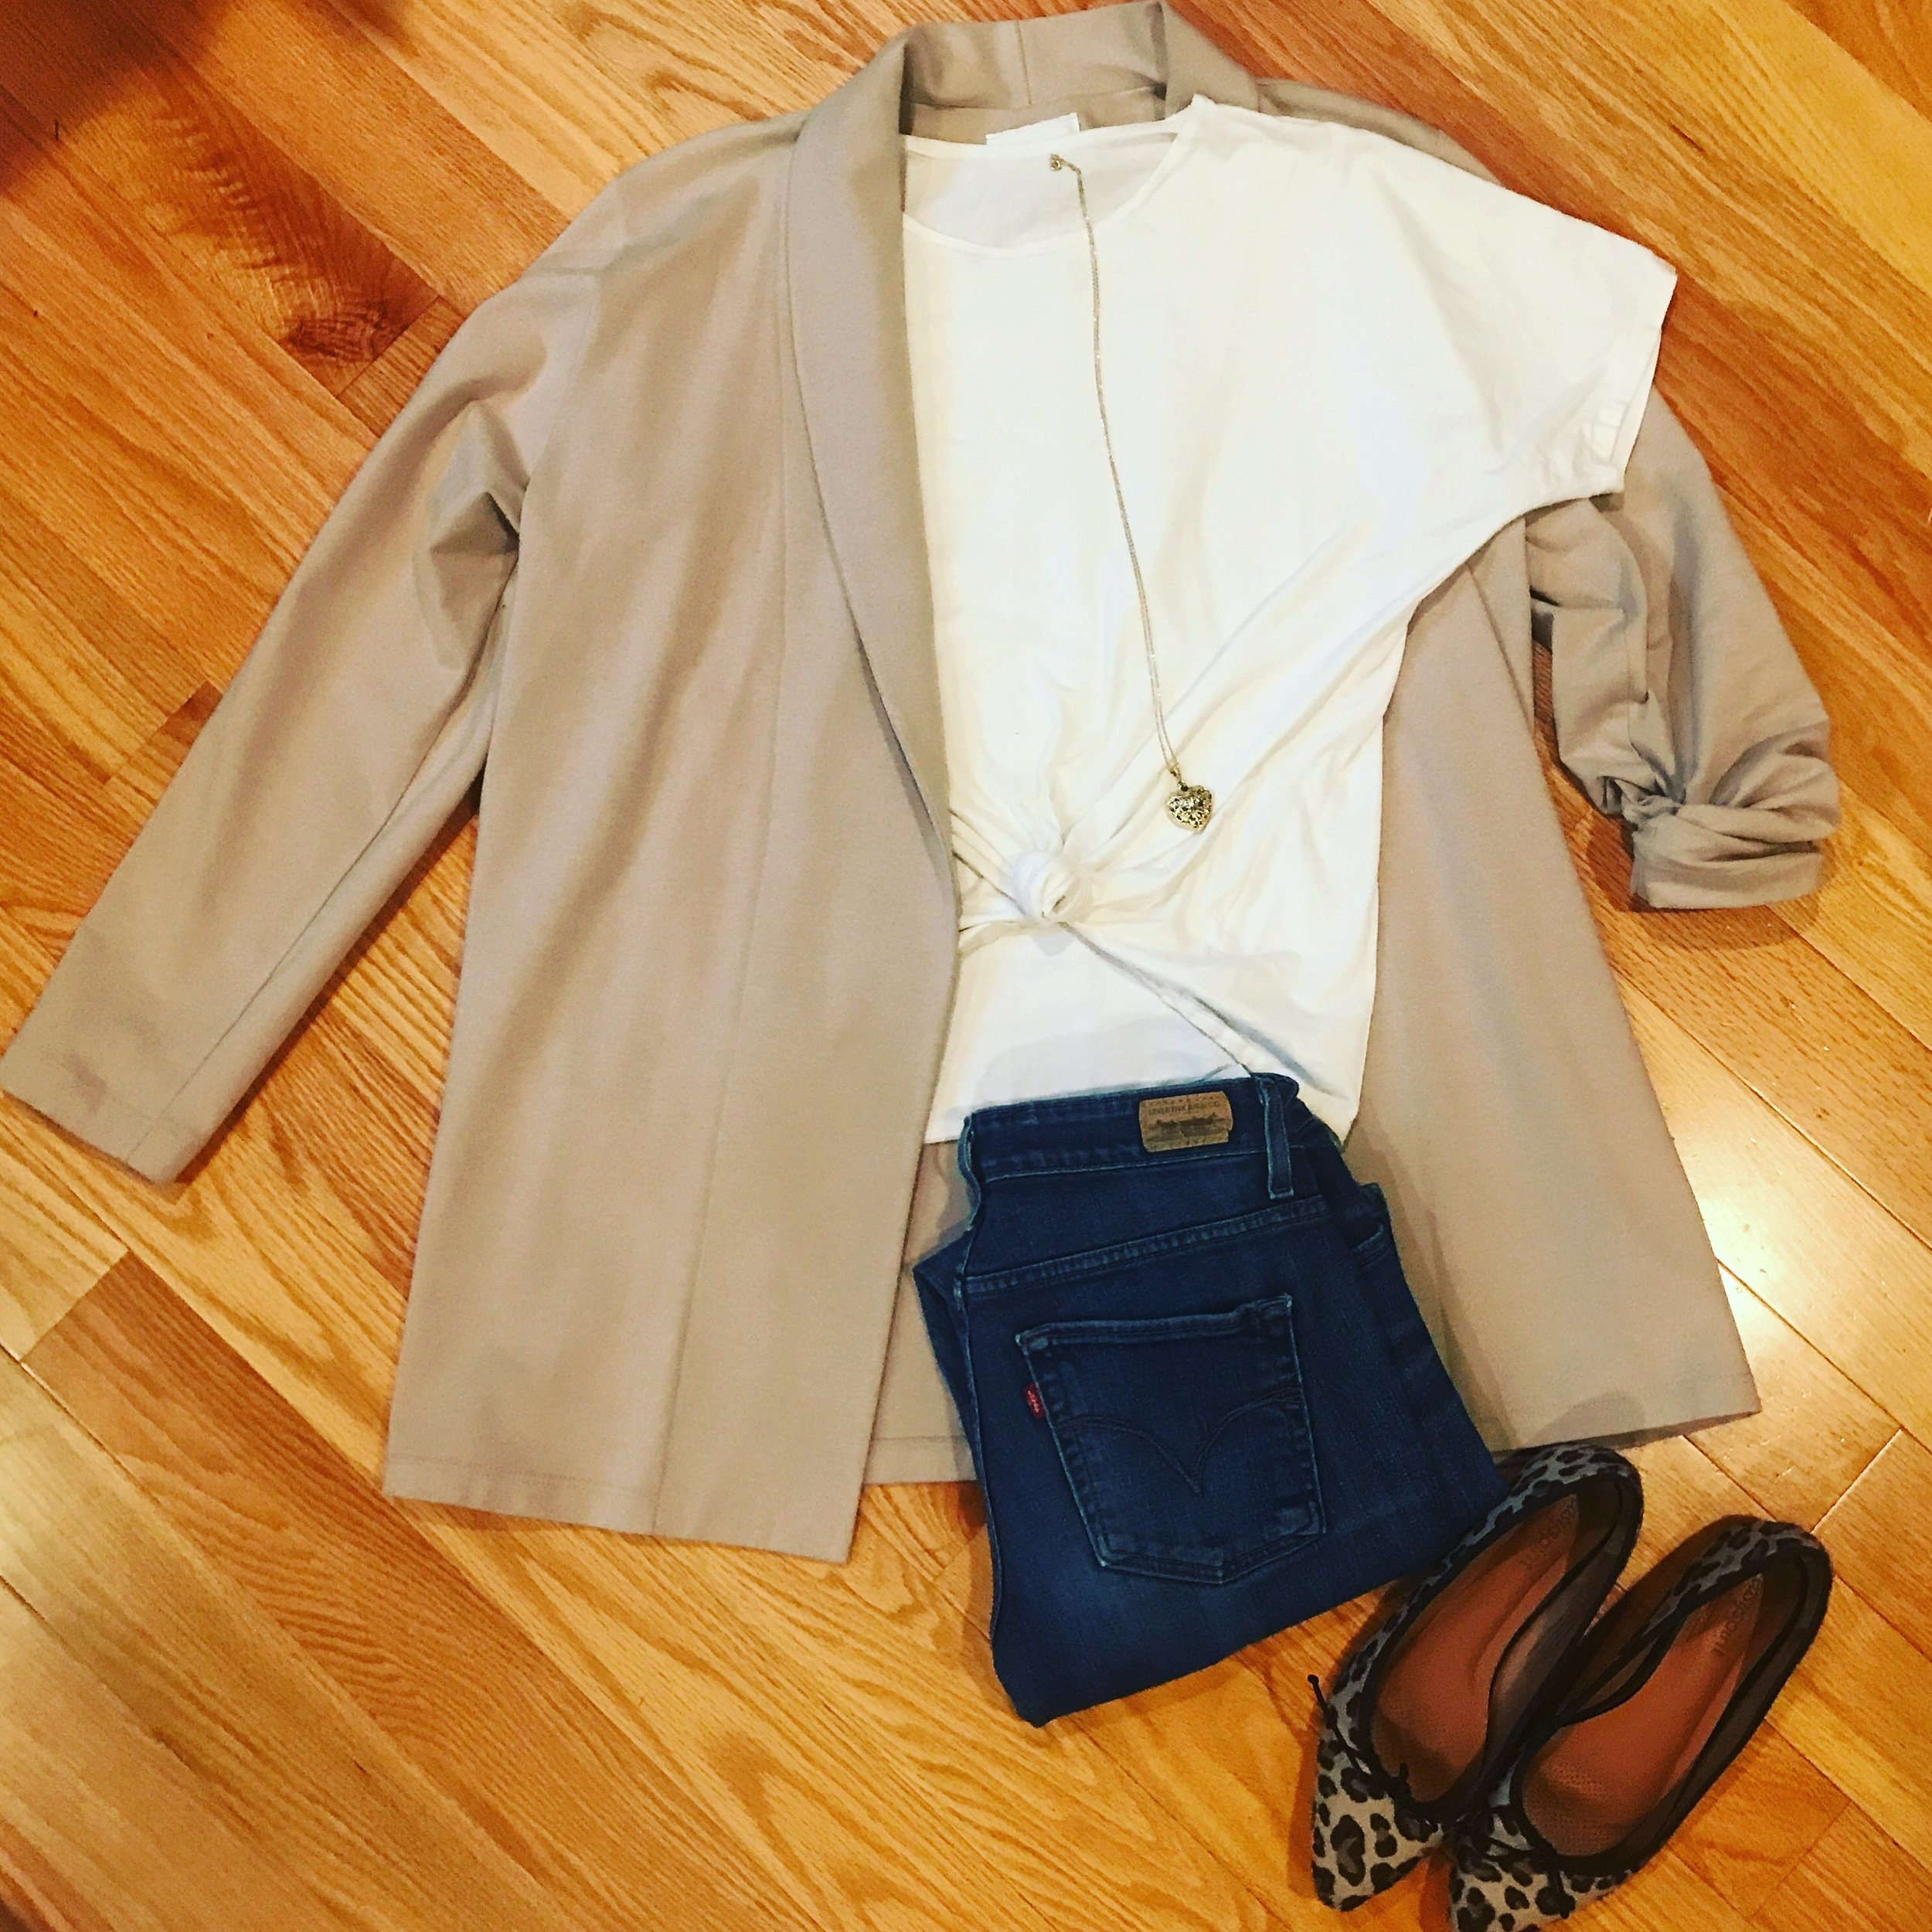 The Boyfriend Jacket shown here with Three Tees (cap sleeve tee version, knotted), your favorite jeans and flats.